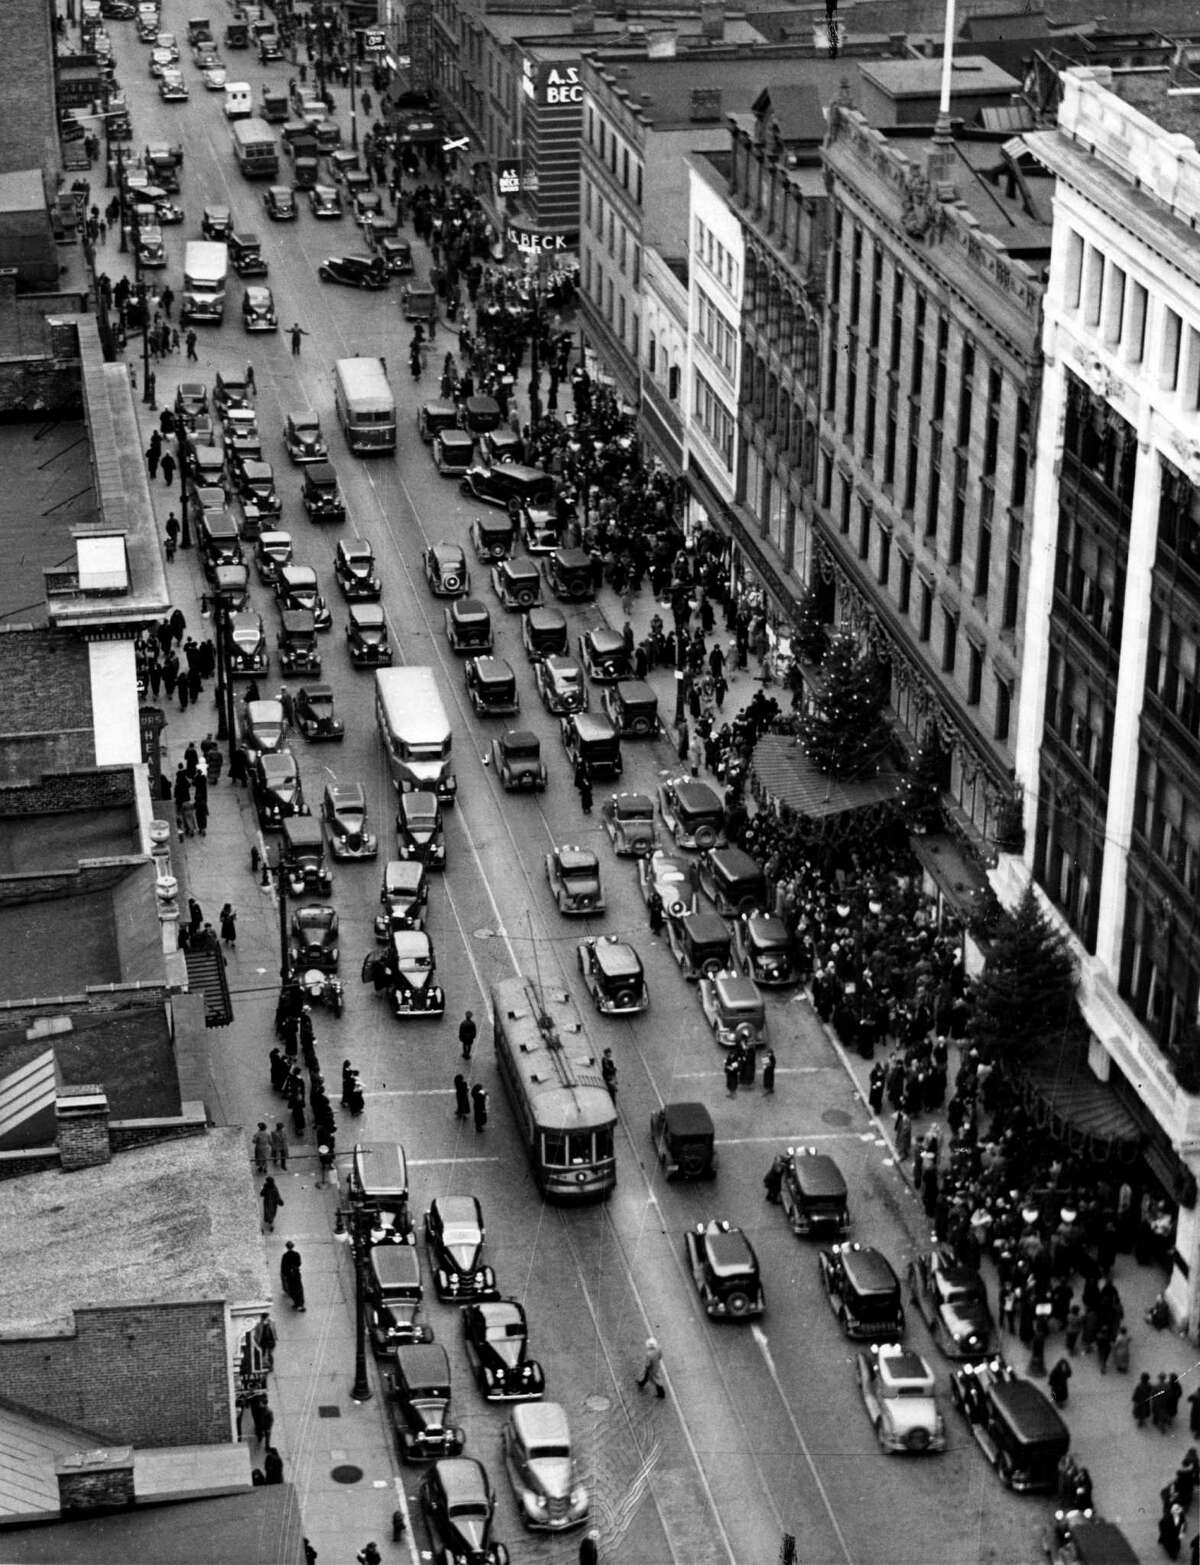 Christmas shoppers fill North Pearl at John G. Myers Co. department store, right, Dec. 17, 1935, in Albany, N.Y. Historic 1930s streets and buildings. (Times Union archive)